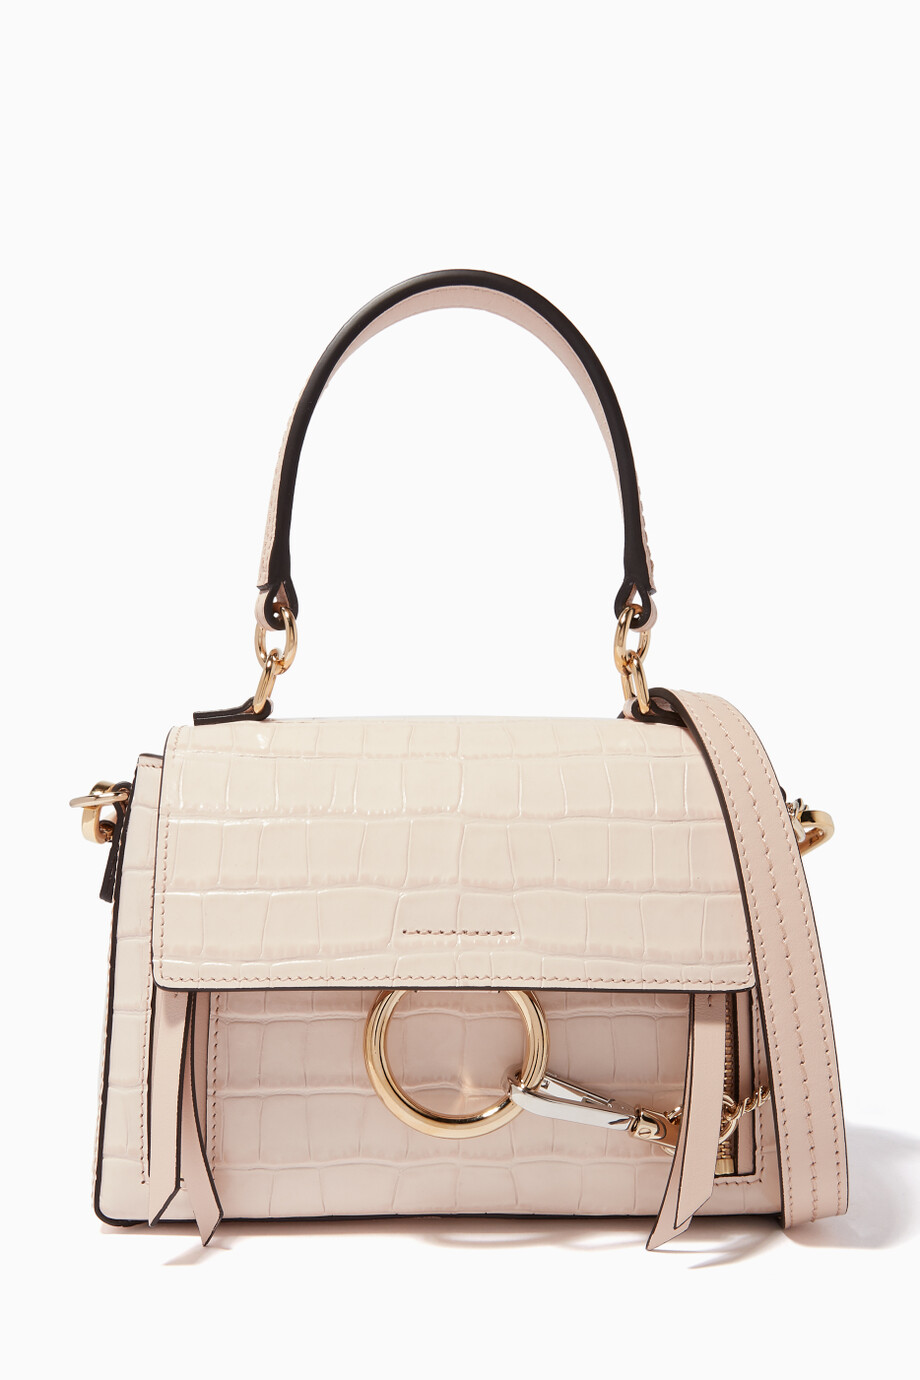 af7a3a8a8 Shop Chloé Pink Mini Faye Day Bag for Women | Ounass